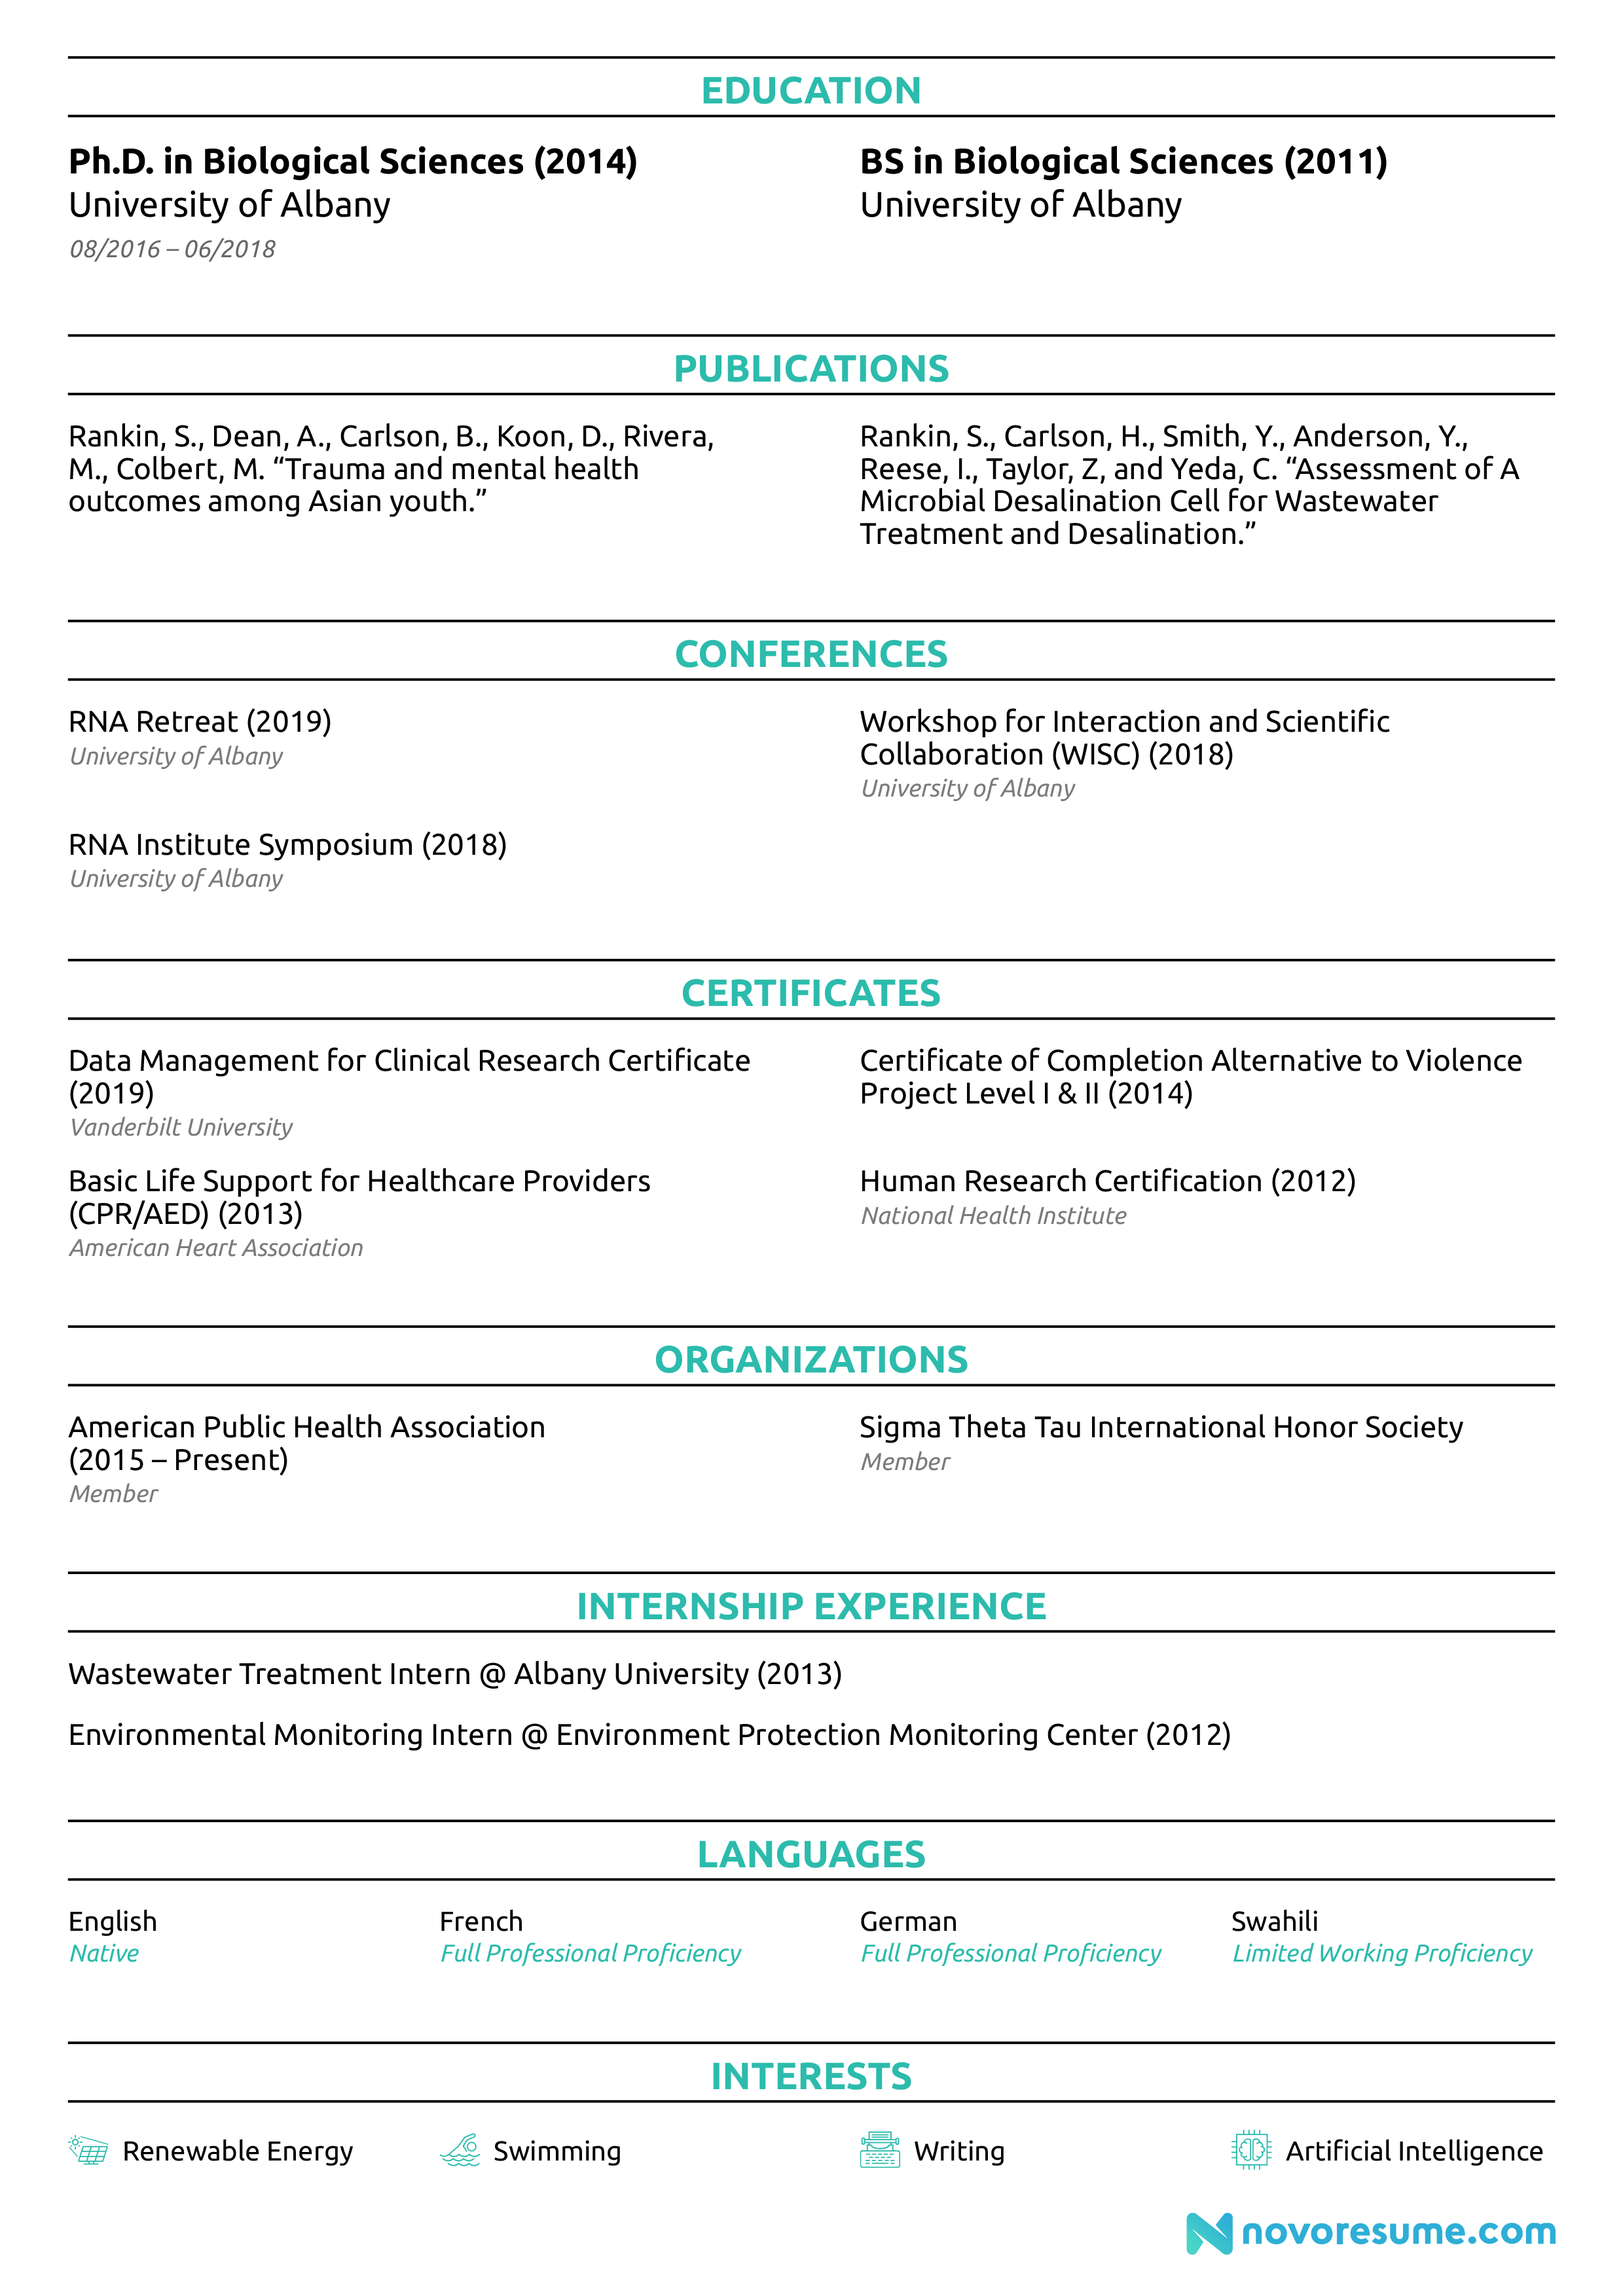 Resume format for research assistant professional creative writing ghostwriters websites